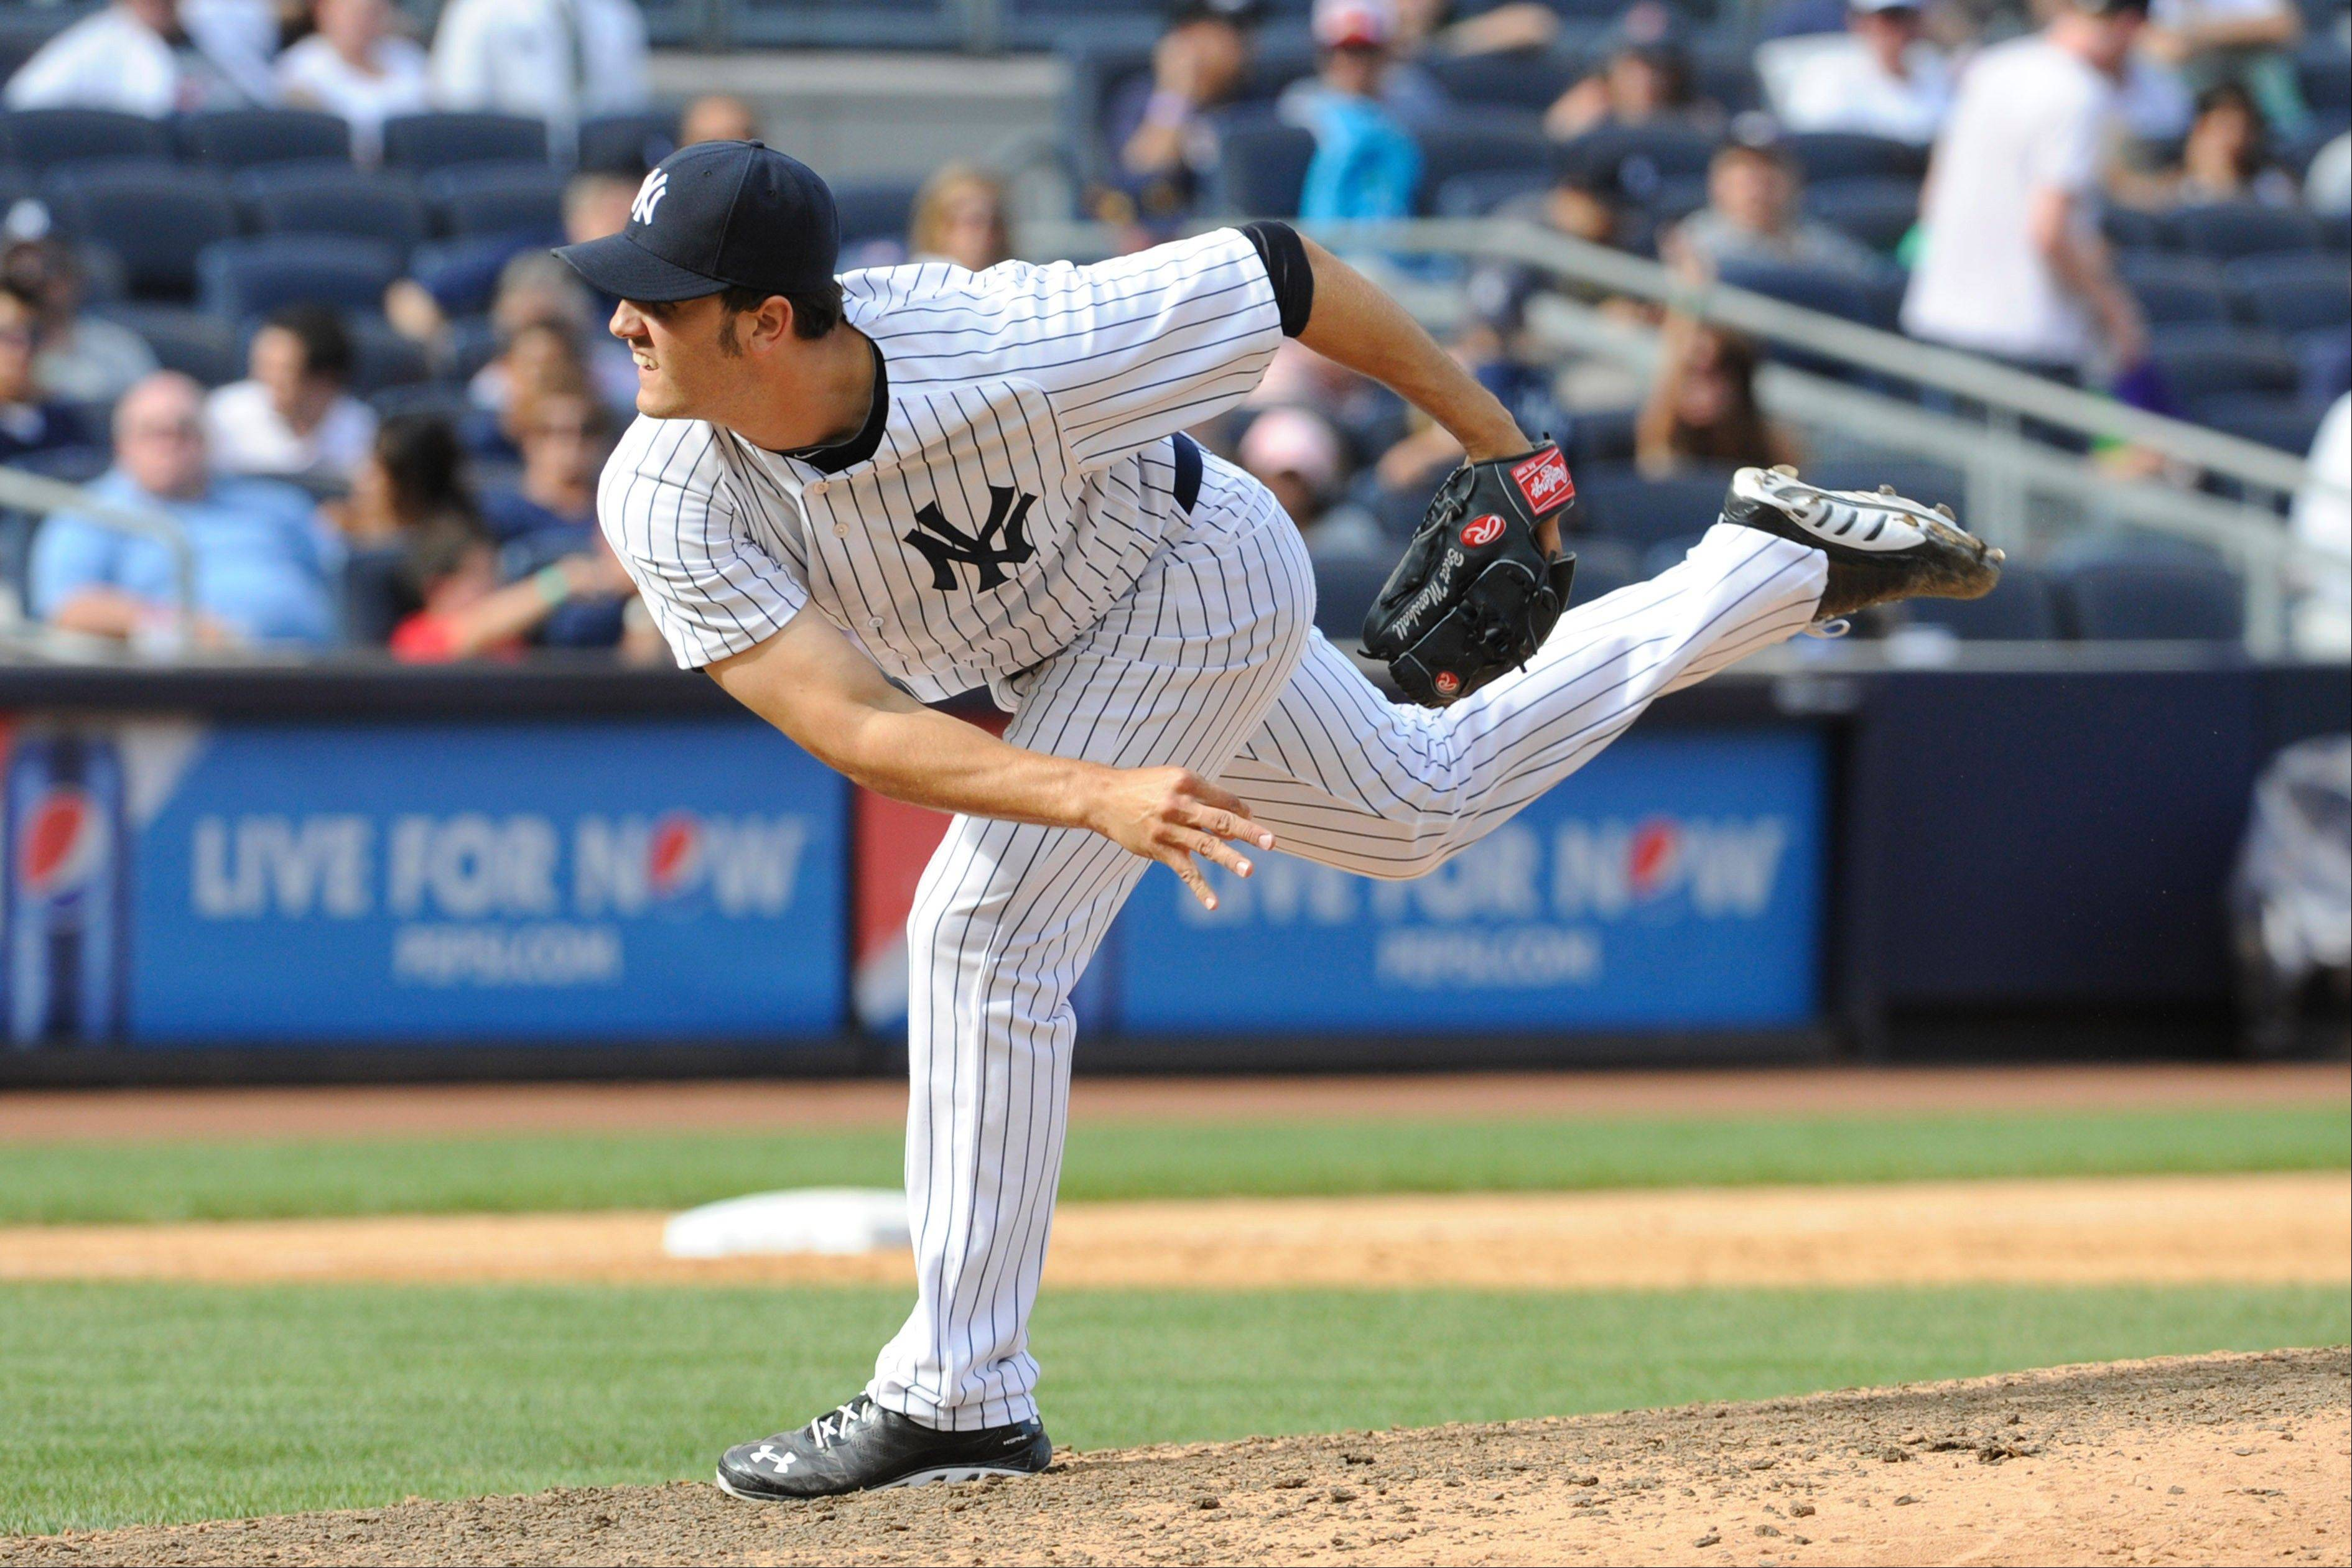 The Cubs have claimed 23-year-old pitcher Brett Marshall from the New York Yankees.